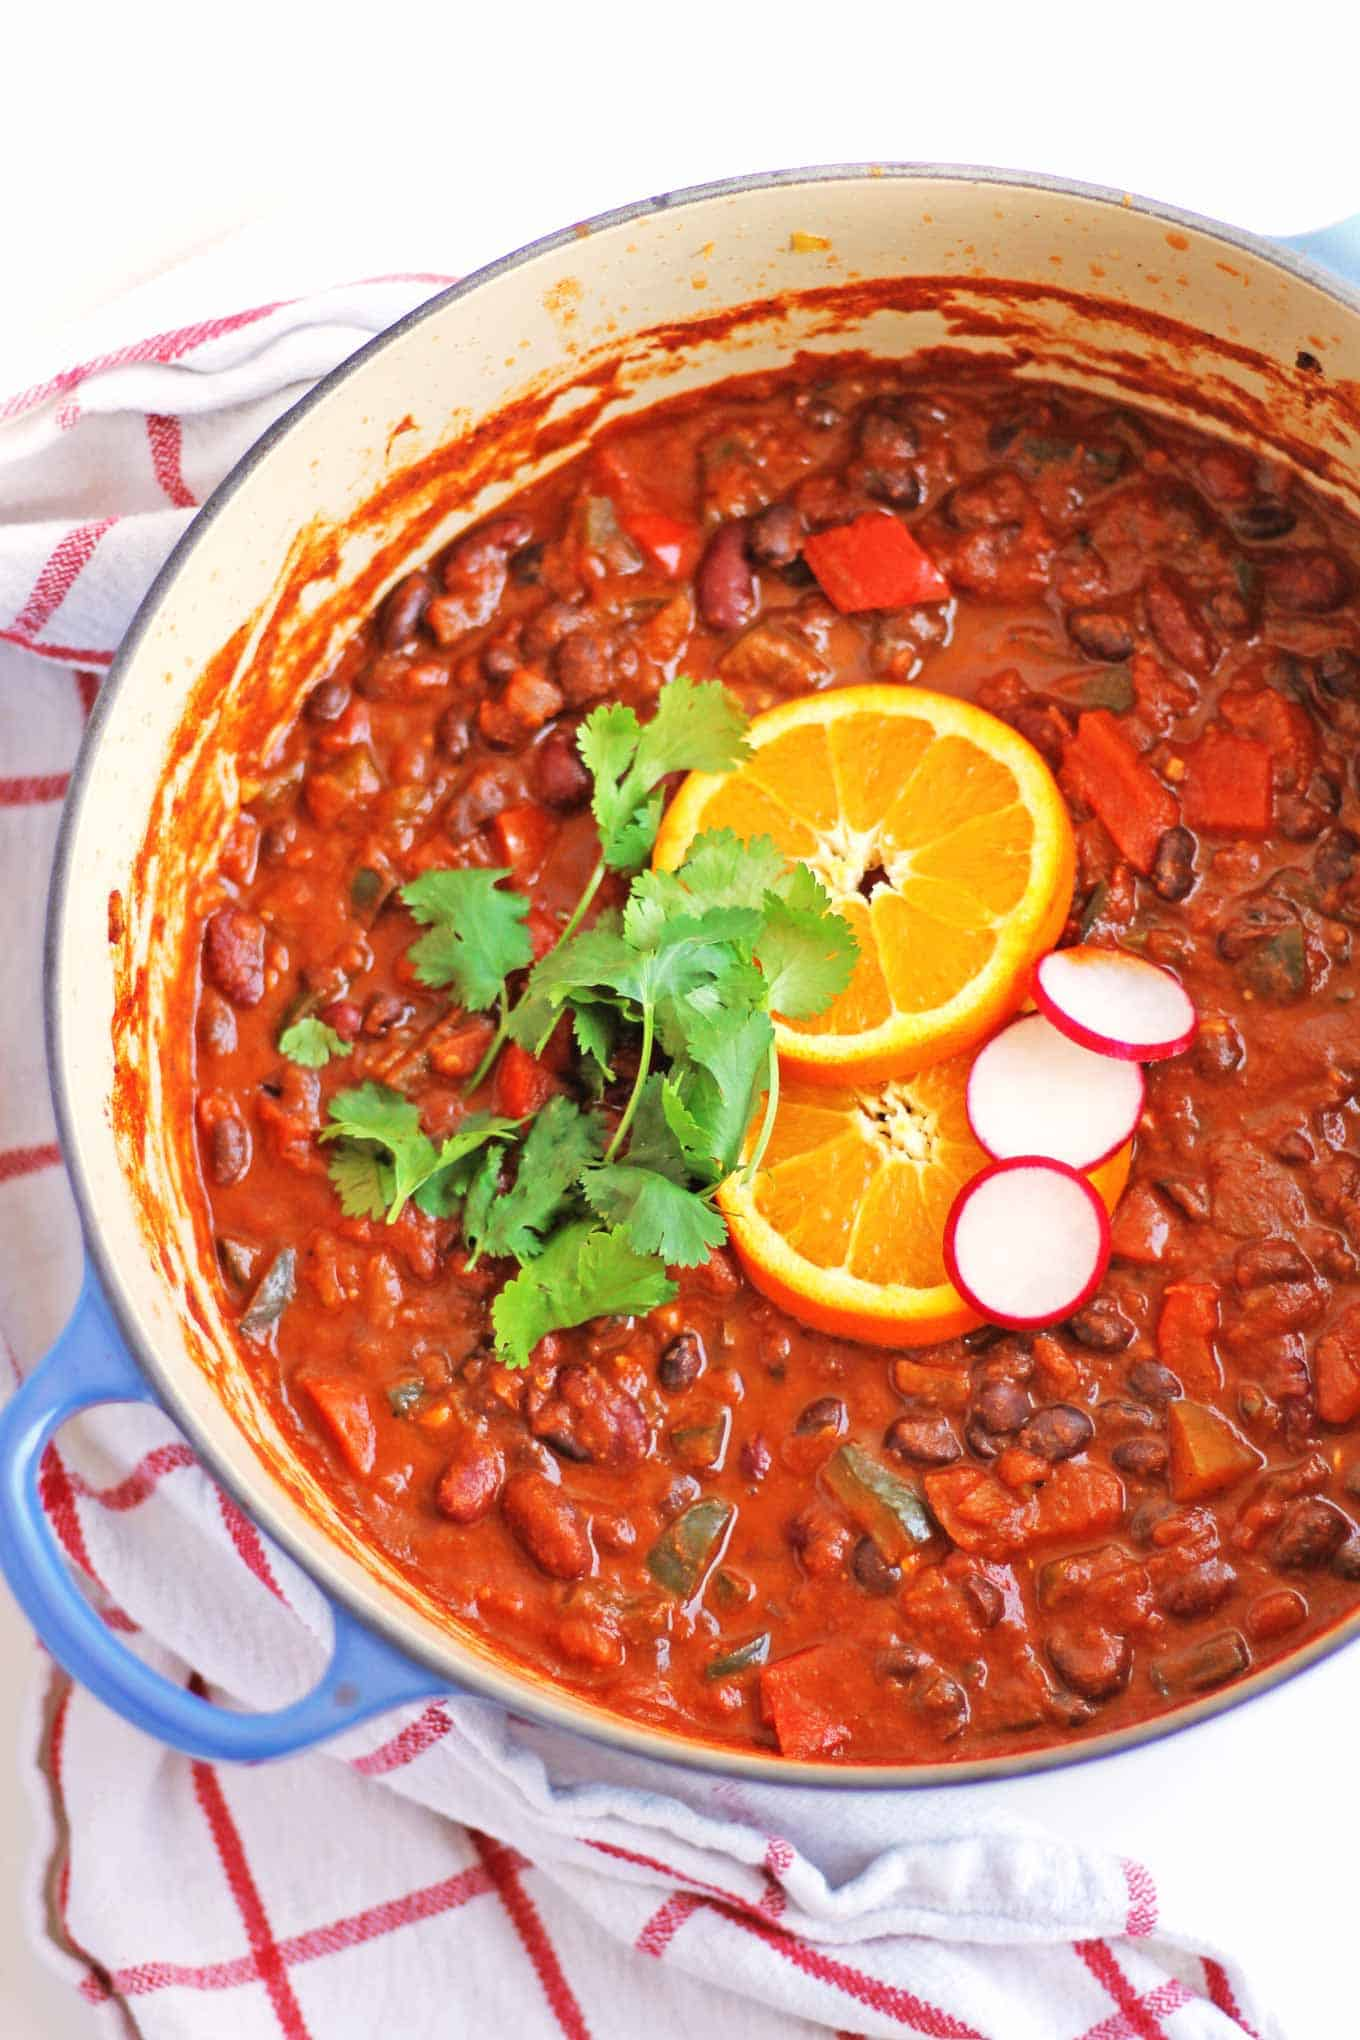 Spicy bean chili with orange and cinnamon recipe! A cozy, vegan chili brightened up with a touch of orange and a pinch of cinnamon. SUPER GOOD! // Rhubarbarians